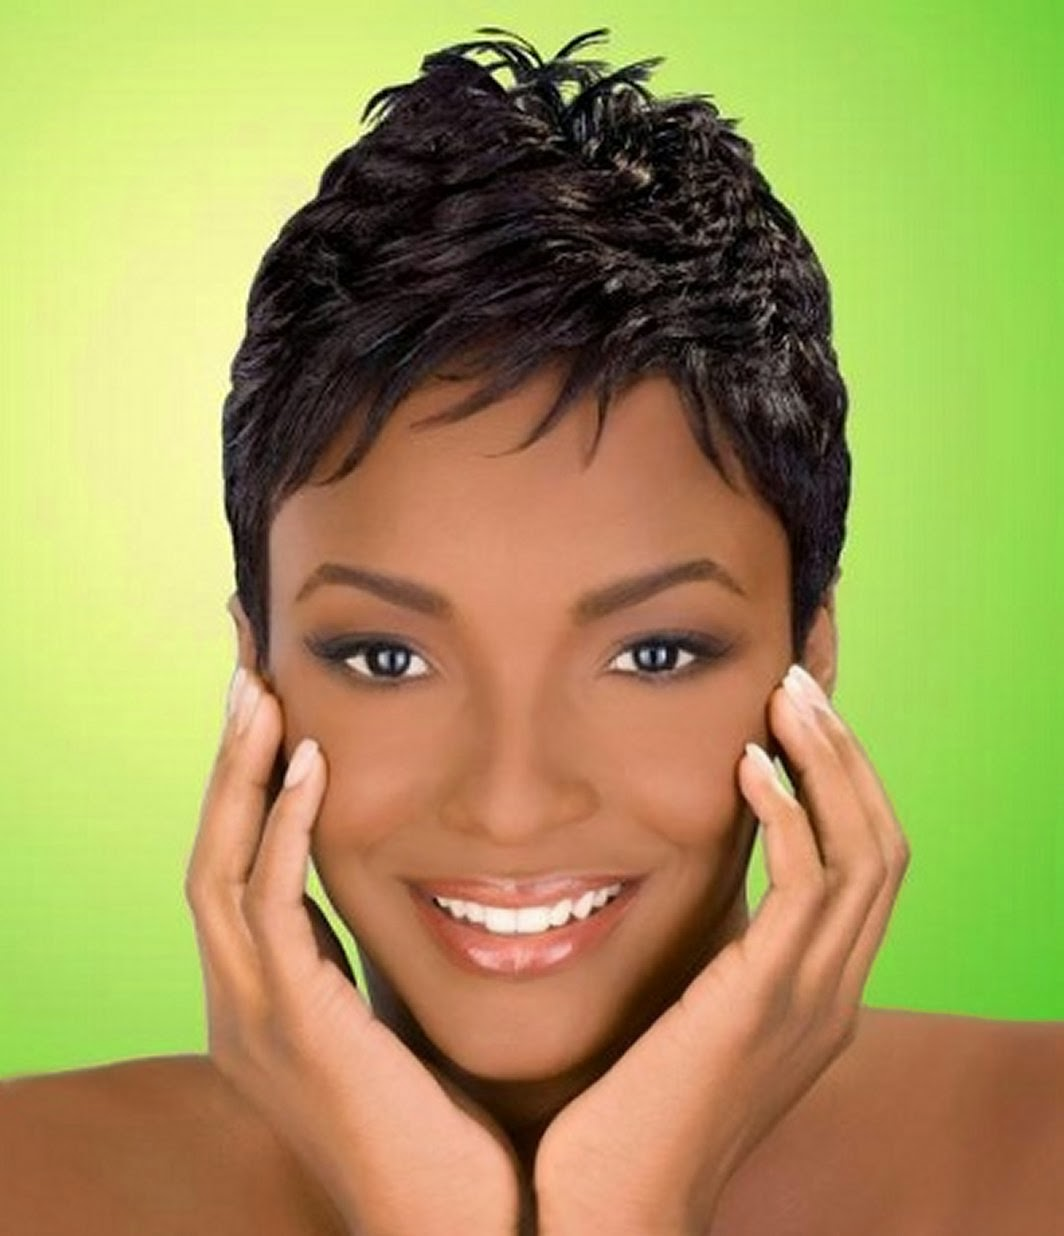 Wondrous Good Short Hairstyles For African American Women Hairstyle Inspiration Daily Dogsangcom